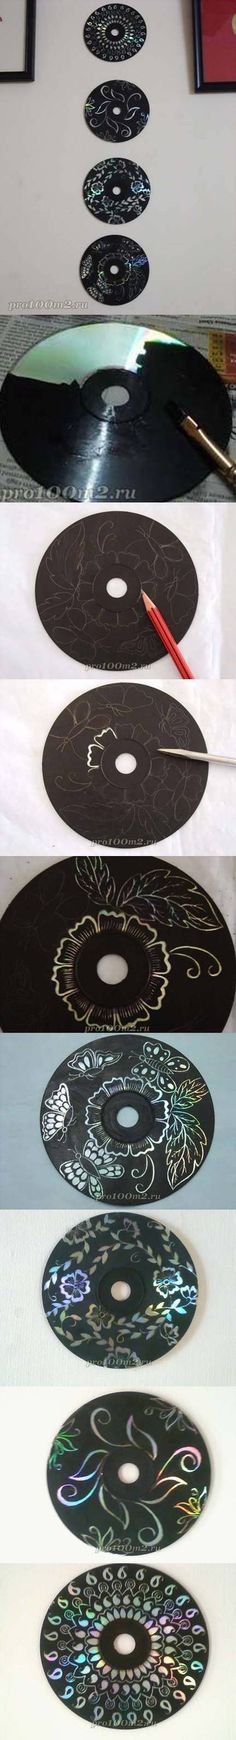 20+ Brilliant Recycle Old CDs Craft Ideas